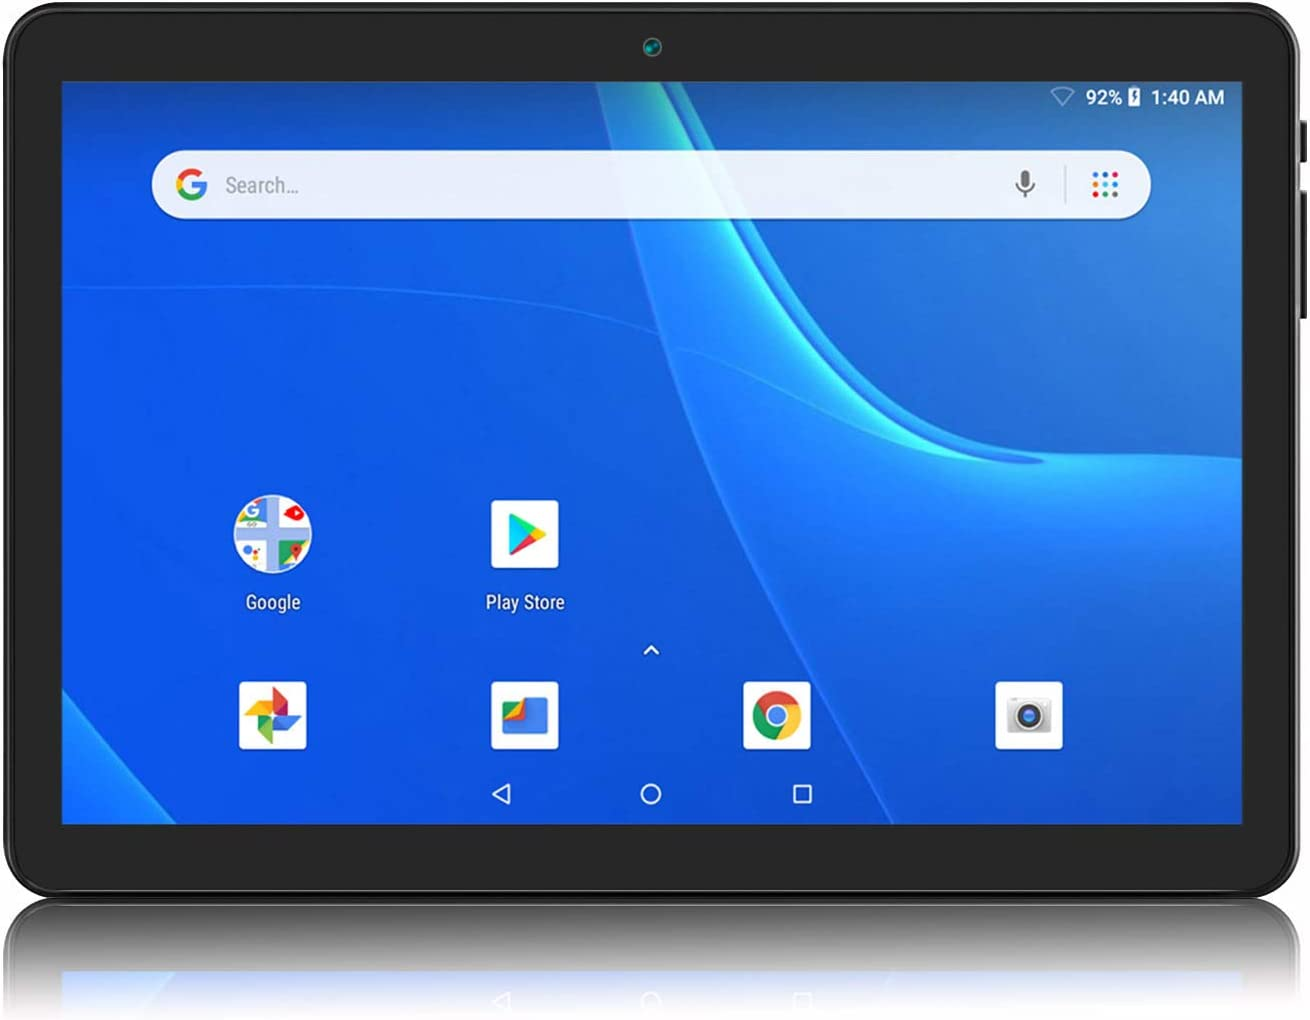 Android Tablet 10 Inch, 5G WiFi Tablet, 16 GB Storage, Google Certified, Android 8.1 Go, Dual Camera, Bluetooth, GPS Black : Amazon.ca: Electronics